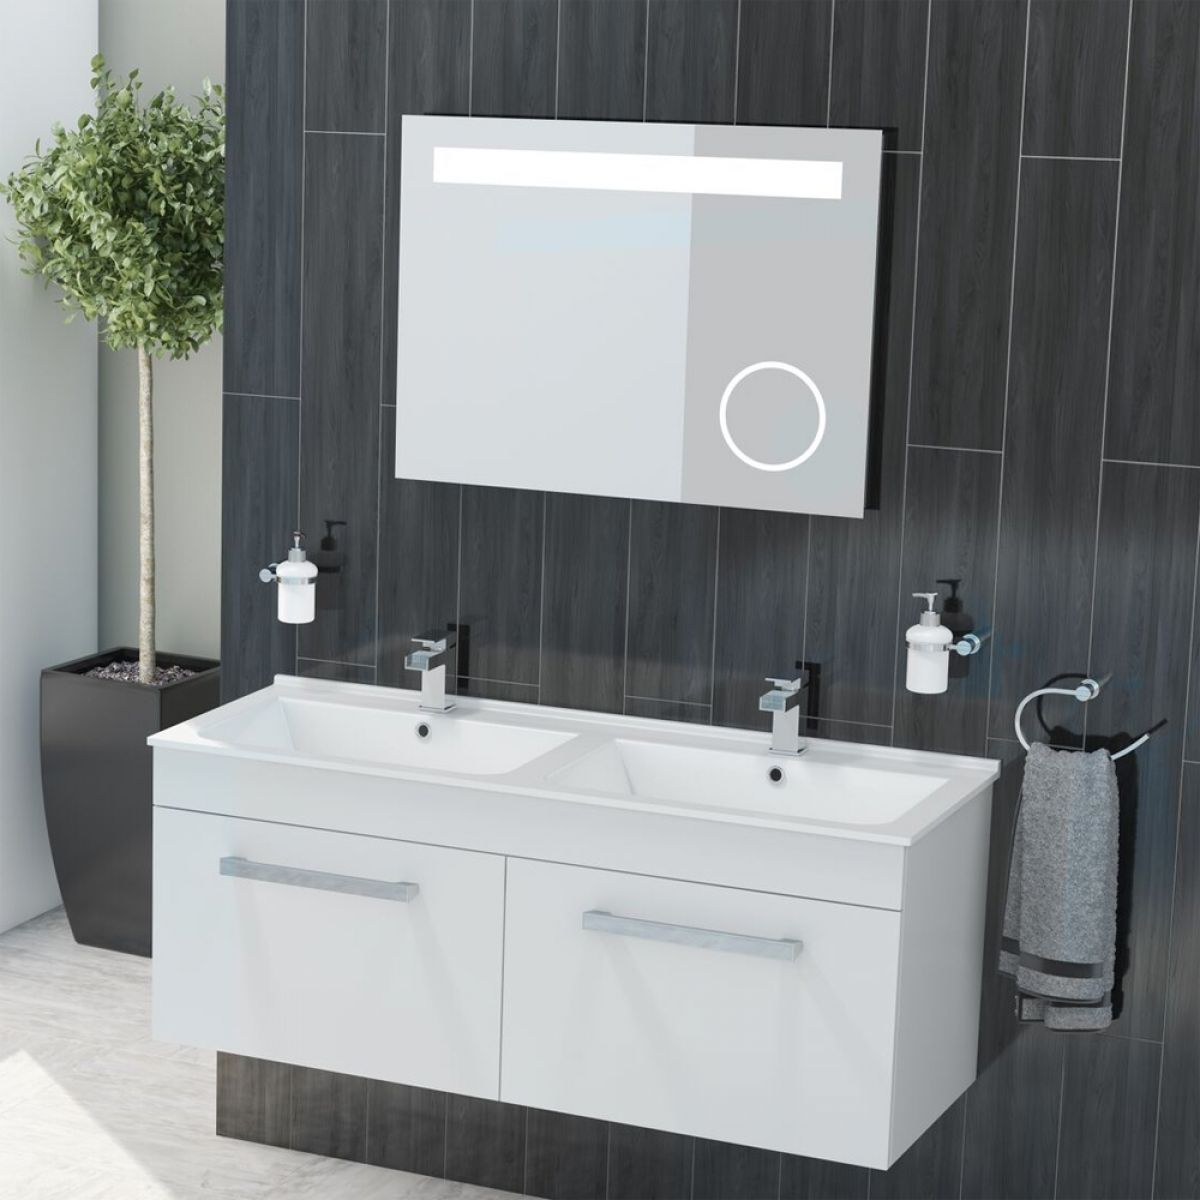 Cassellie Slimline Gloss White Wall Hung Dual Vanity Unit 1250mm Lifestyle